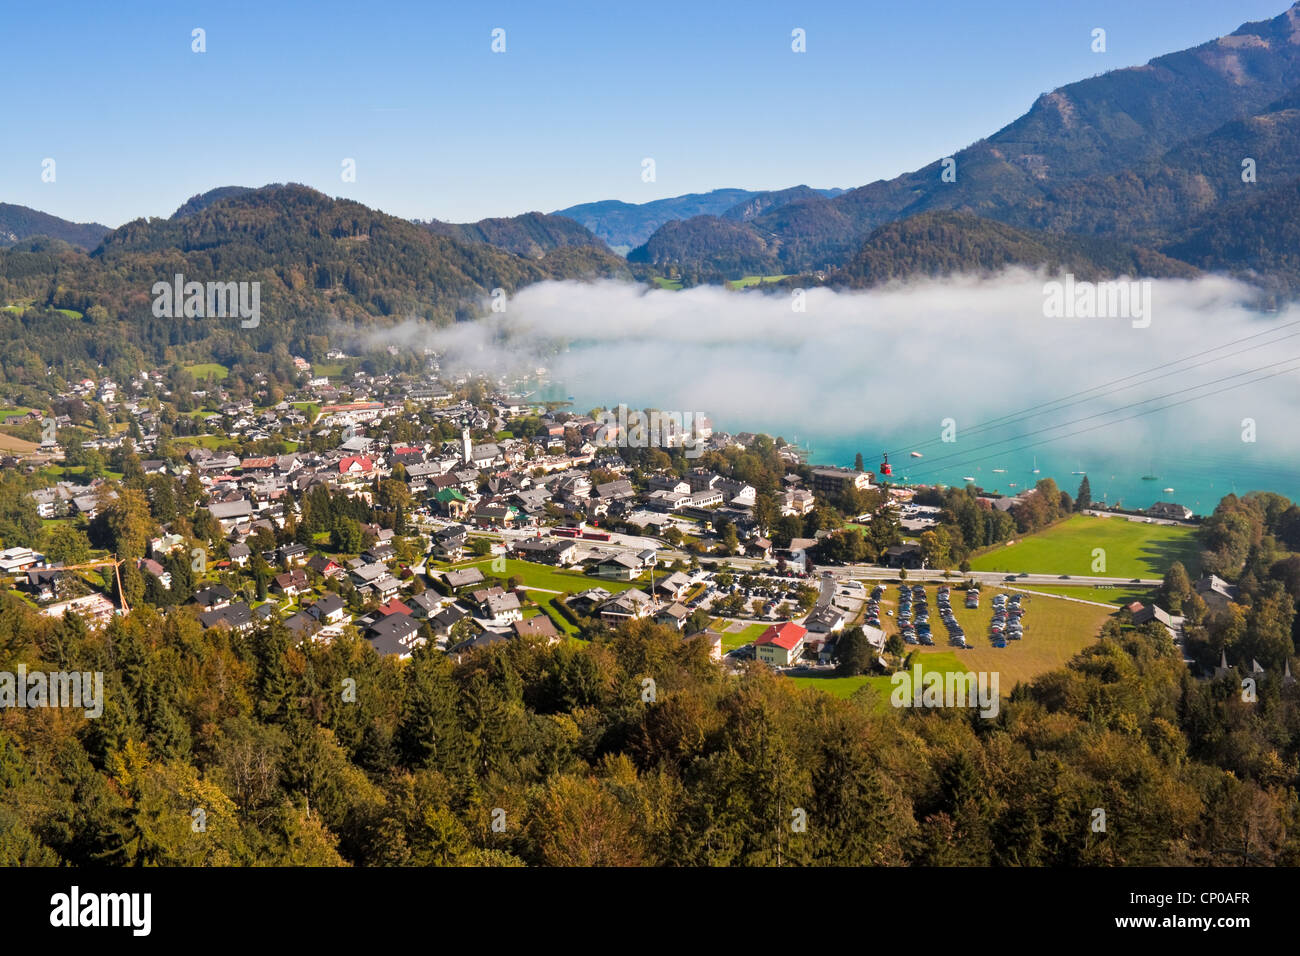 view of St. Gilgen, Wolfgangsee and mountains in Austria - Stock Image